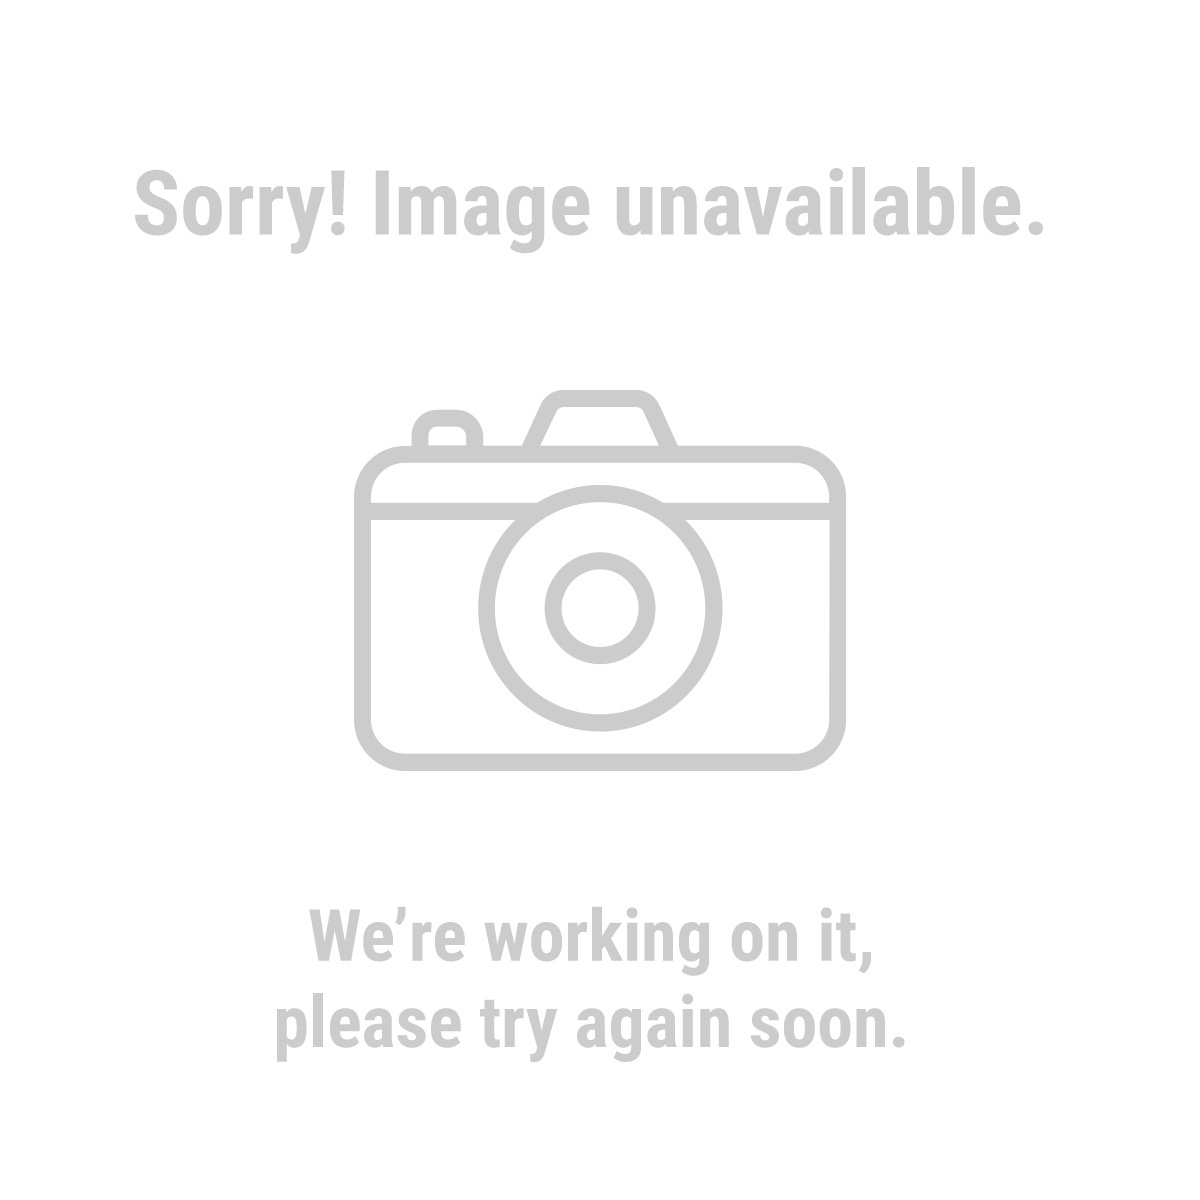 Warrior 61547 3/32 in. Titanium Nitride Coated High Speed Steel Drill Bits,  Piece